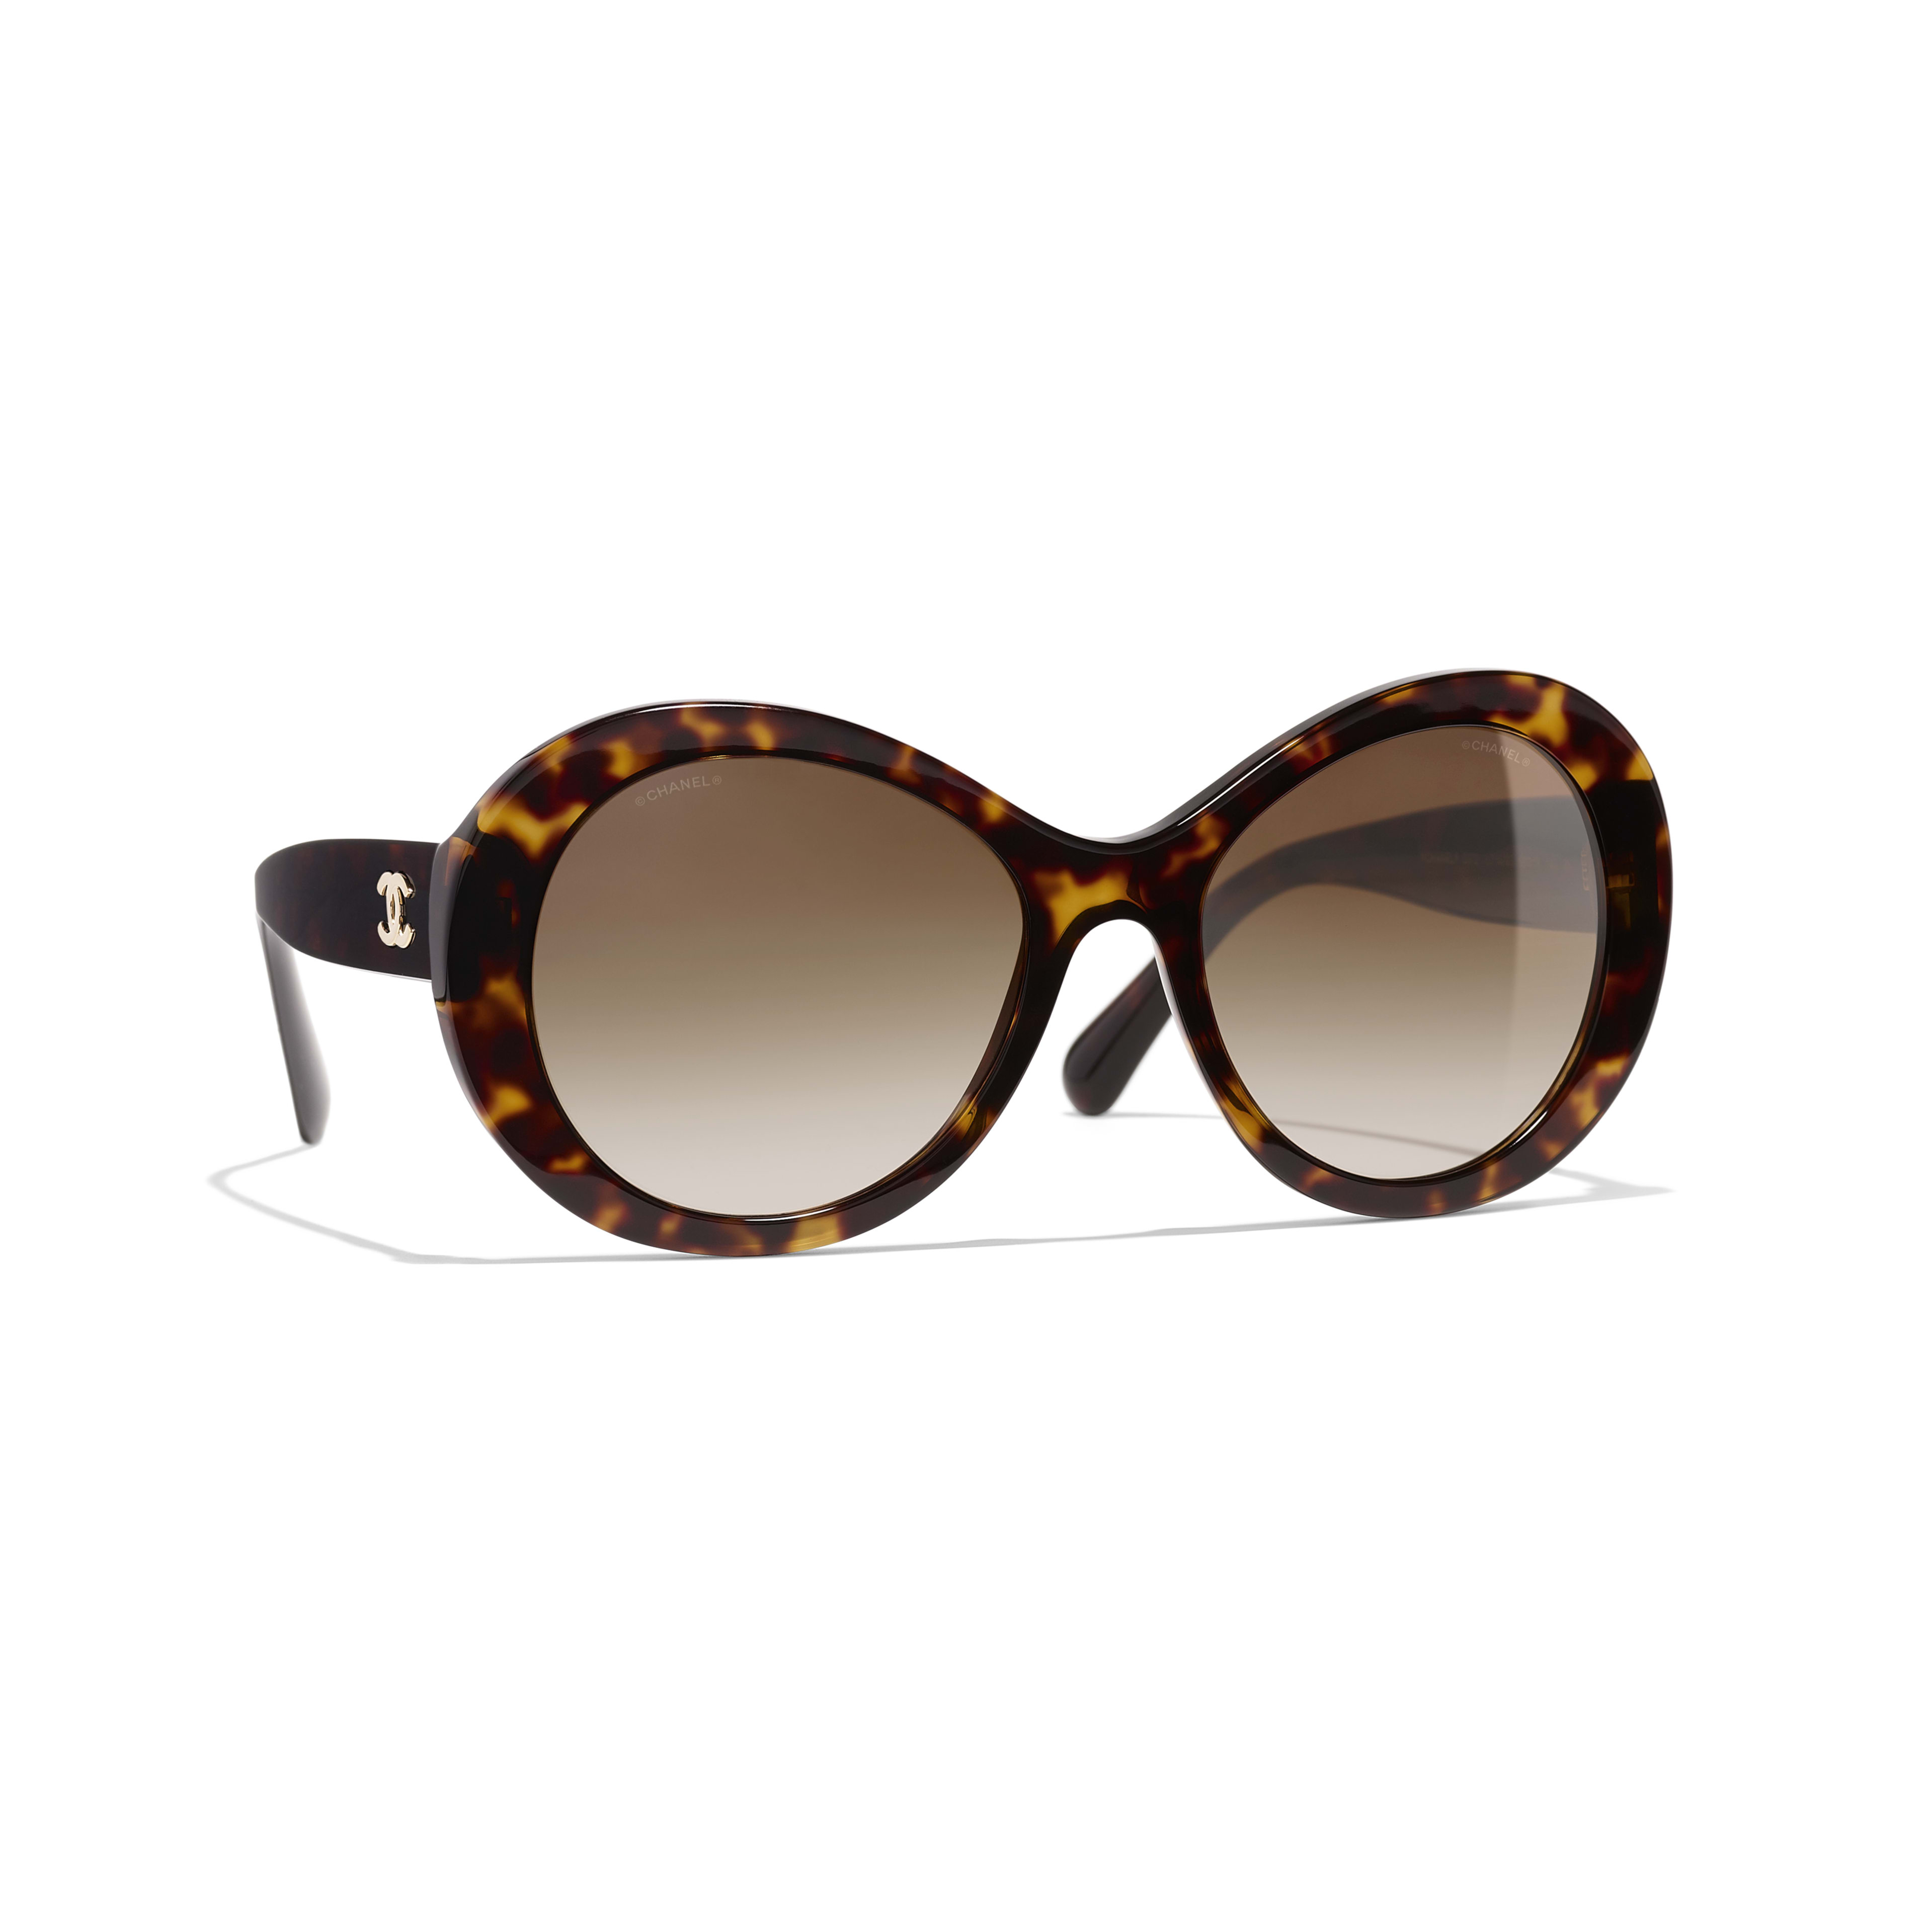 Oval Sunglasses - Dark Tortoise - Acetate - Default view - see full sized version